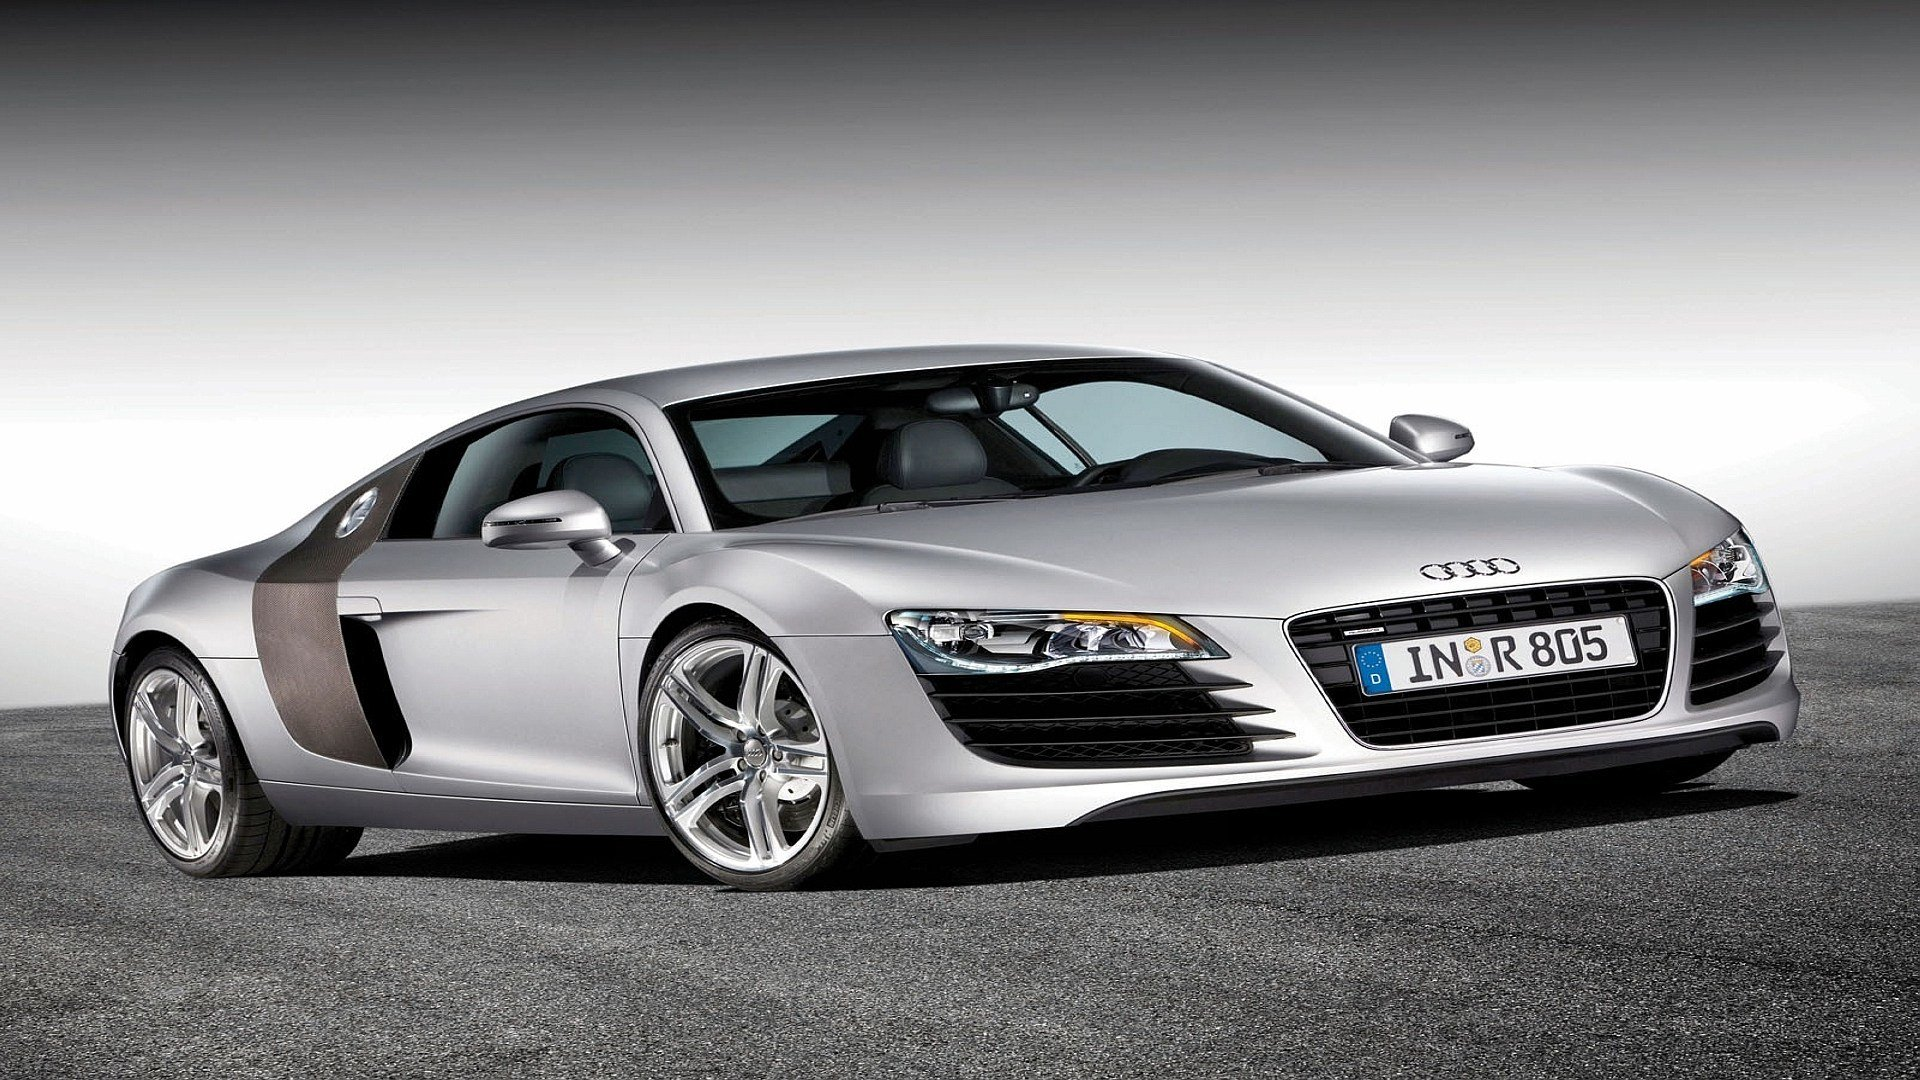 Latest Sleek Sporty Audi Sports Car Wallpaper Hd Wallpapers Free Download